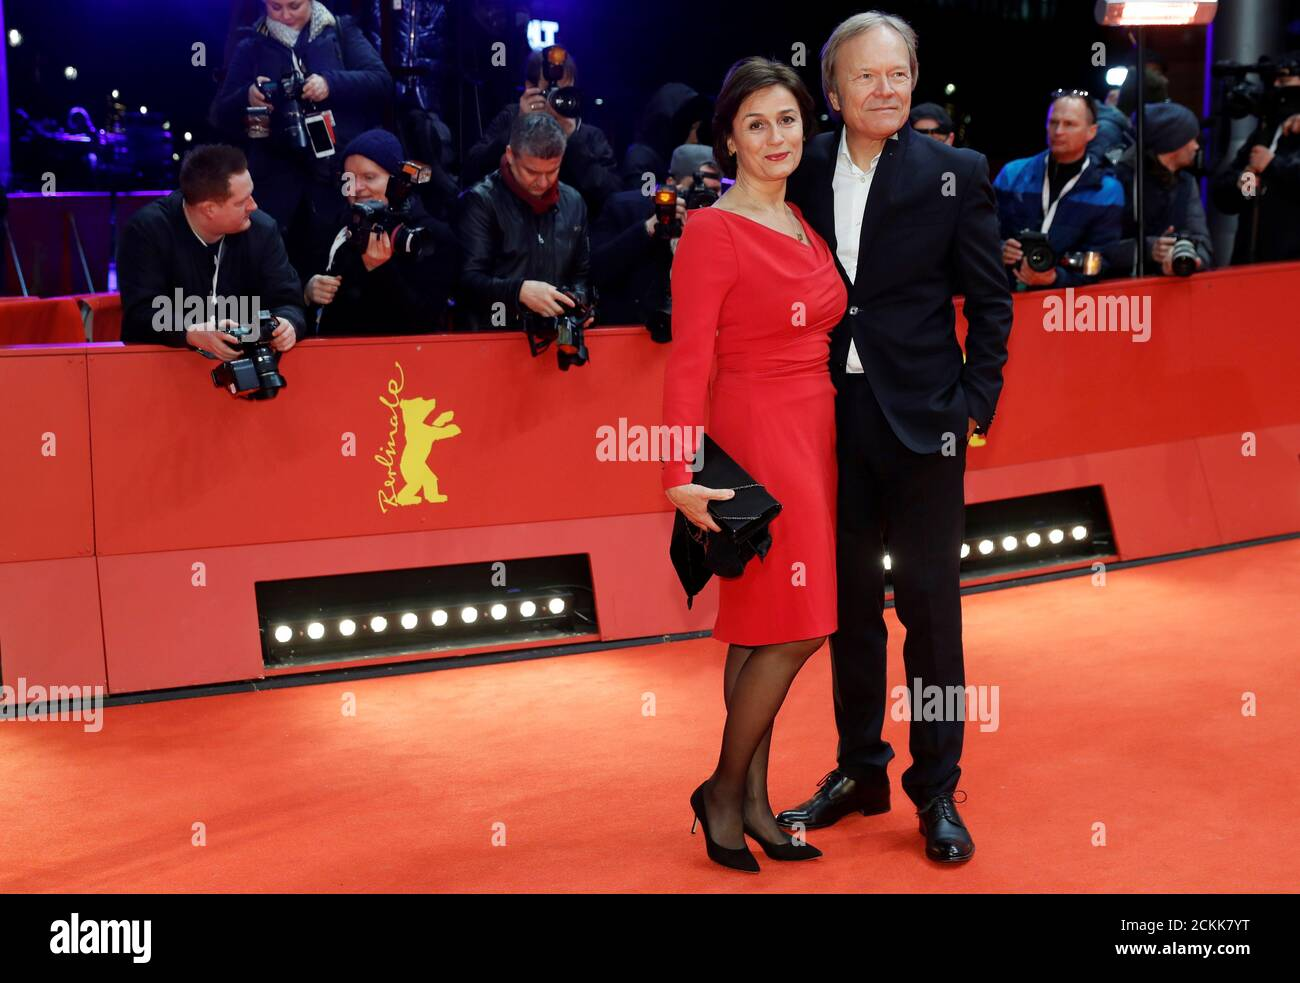 Sandra Maischberger and her husband Jan Kerhart pose on the red carpet as they arrive for the award ceremony of the 70th Berlinale International Film Festival in Berlin, Germany, February 29, 2020. REUTERS/Michele Tantussi Stock Photo